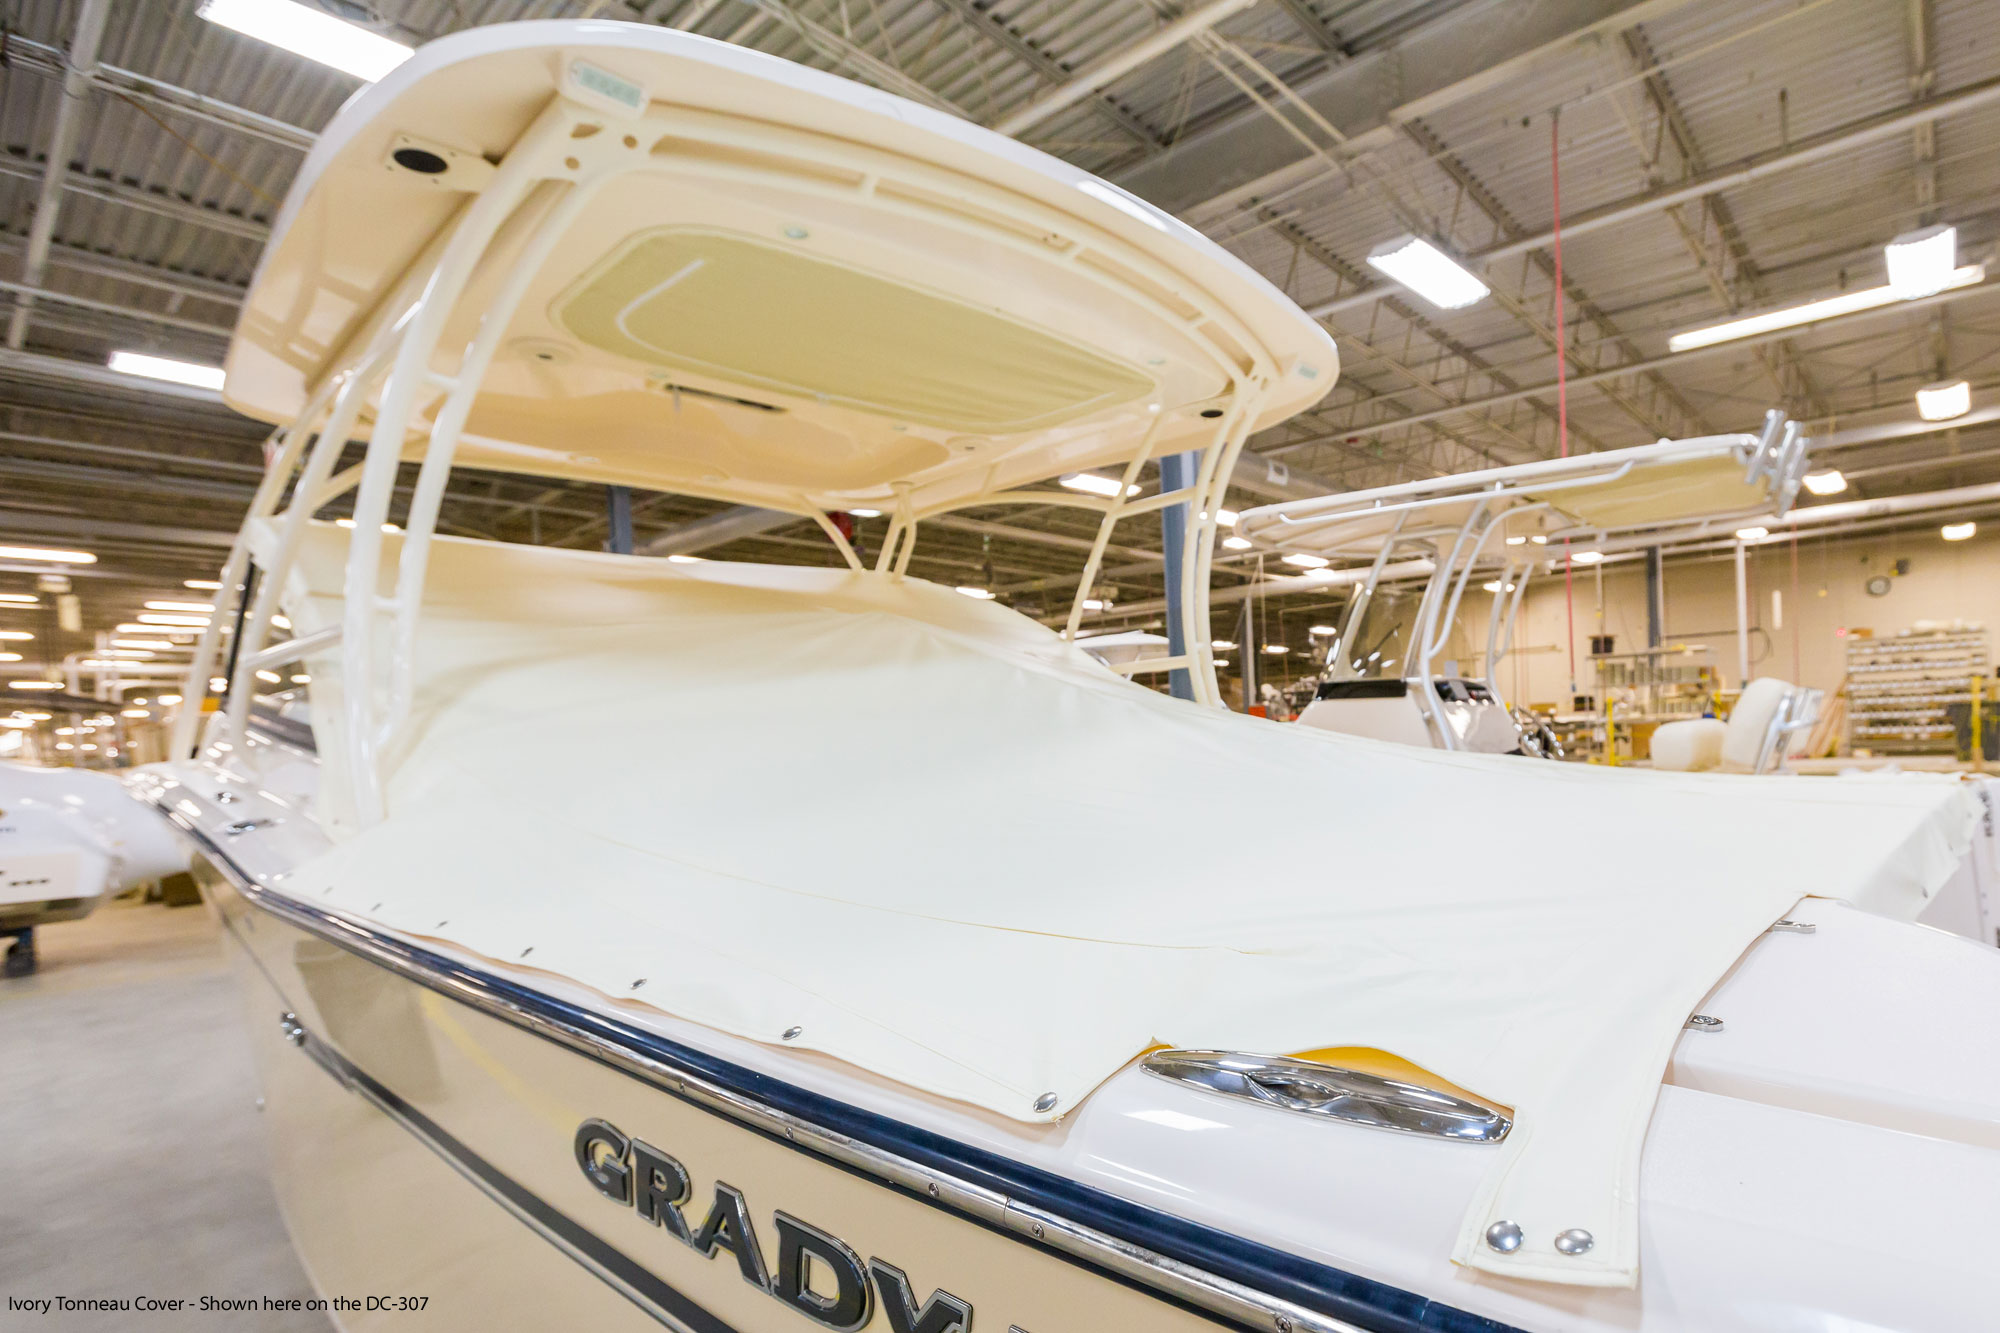 Grady-White Freedom 255 25-foot dual console ivory tonneau cover